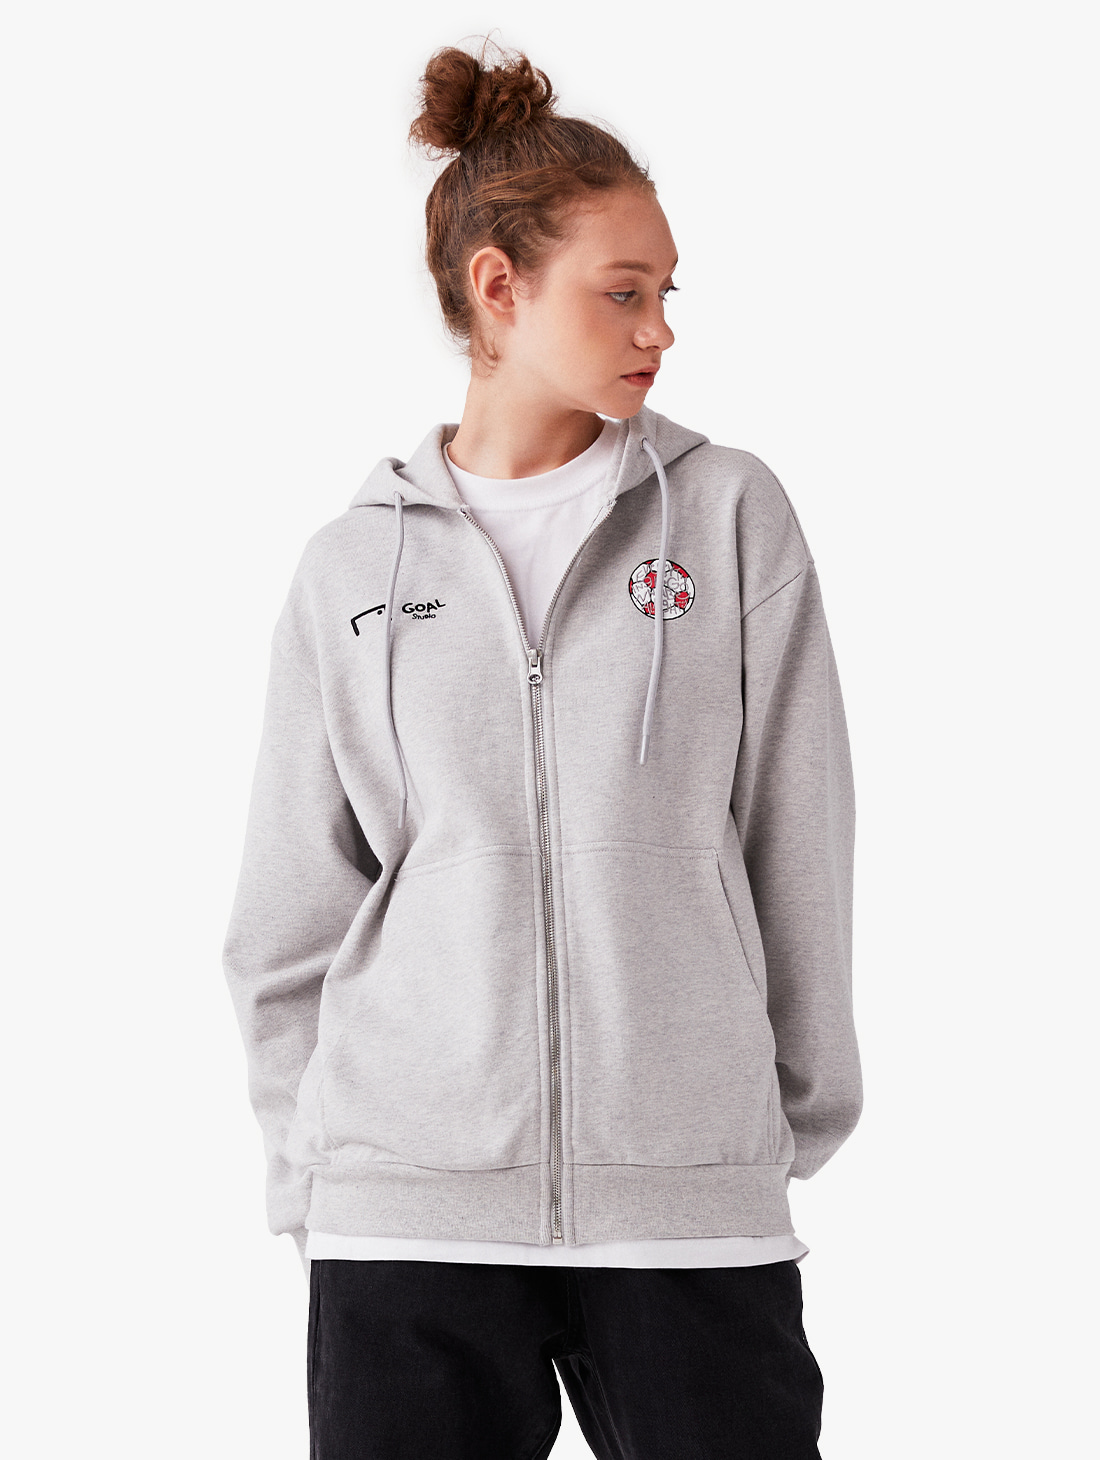 CFC ZIP UP HOODIE (2 Colors)